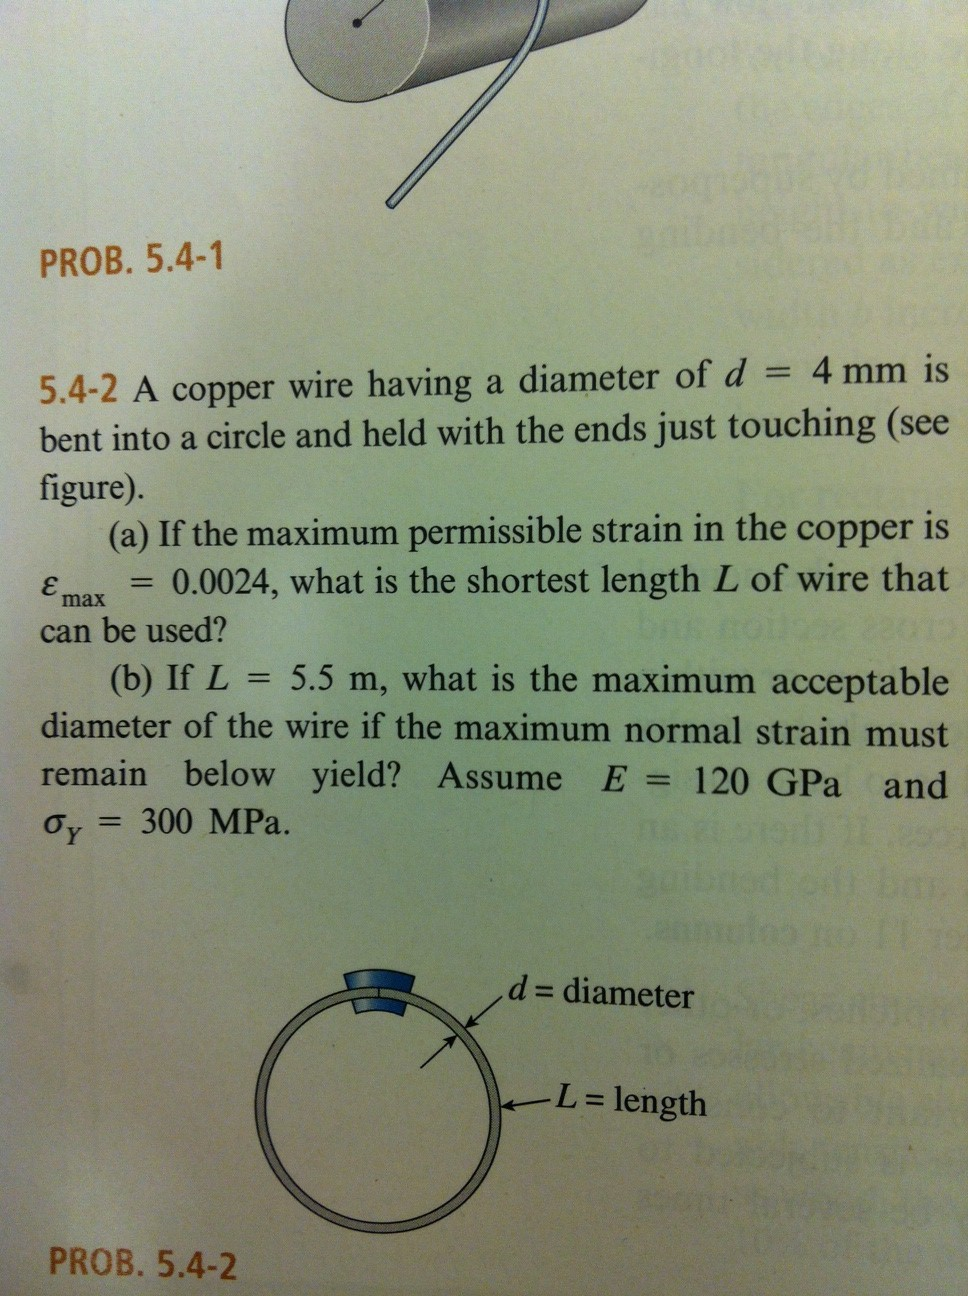 A copper wire having a diameter of d = 4 mm is ben